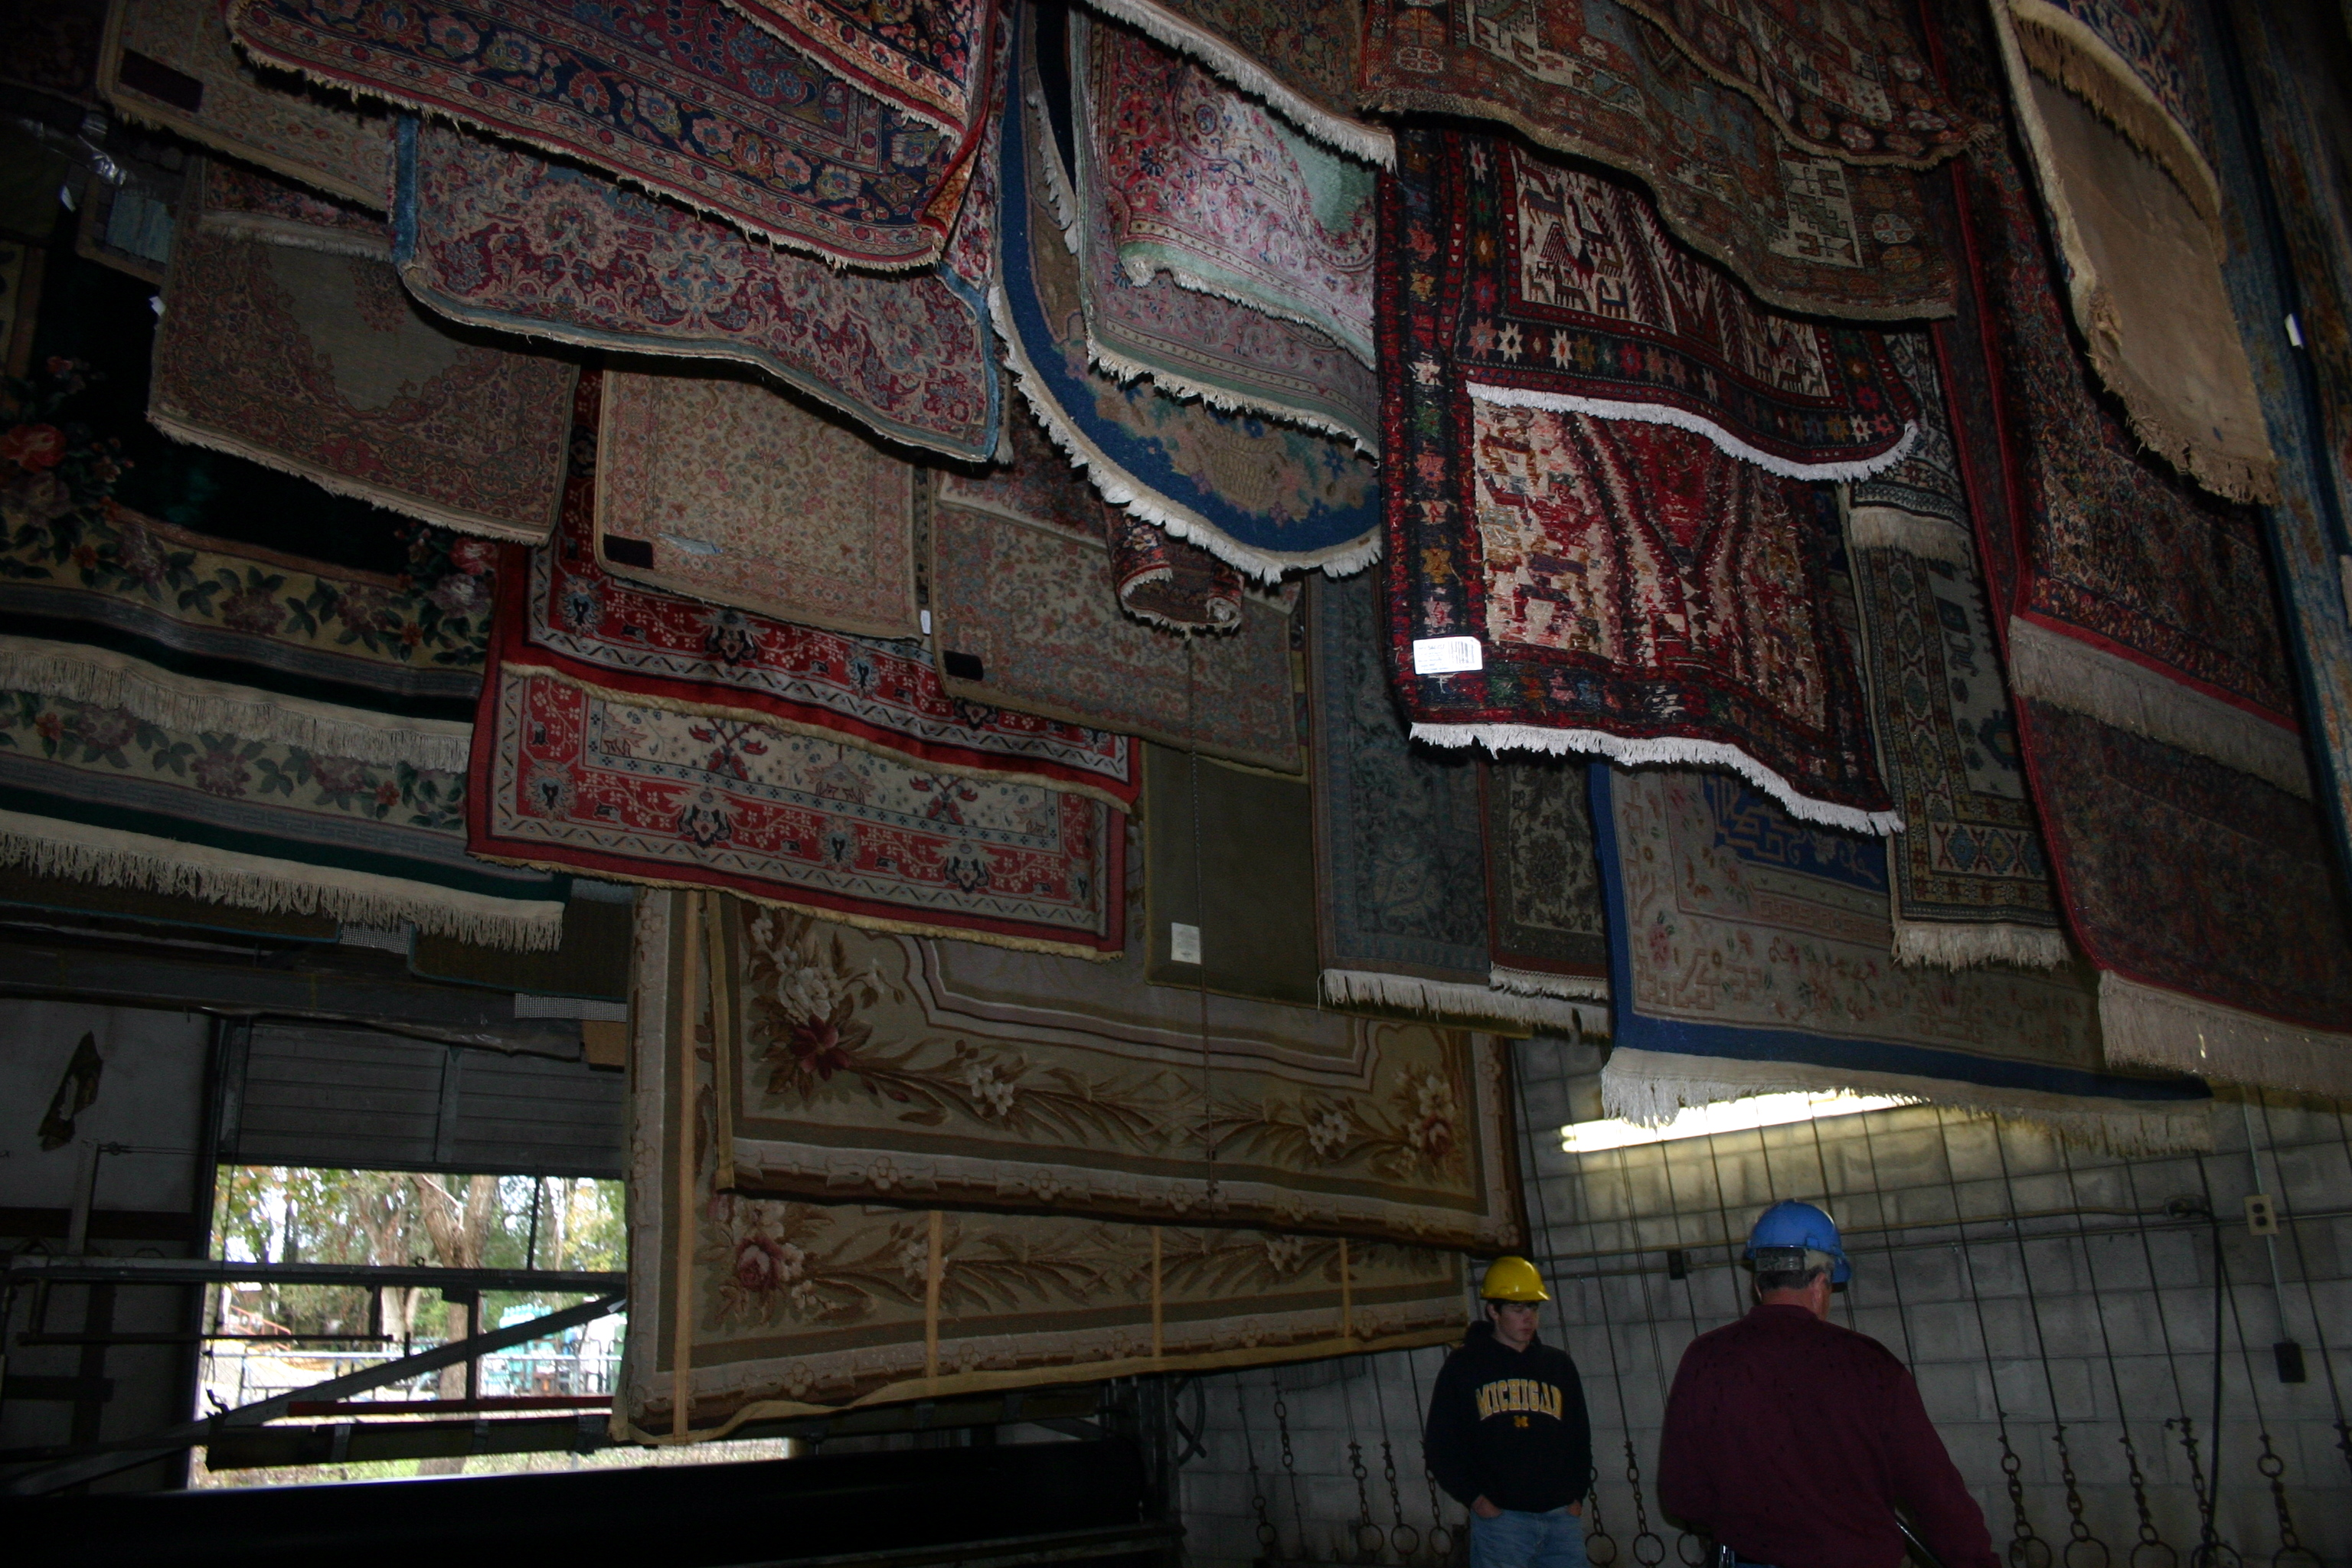 more rugs drying overhead